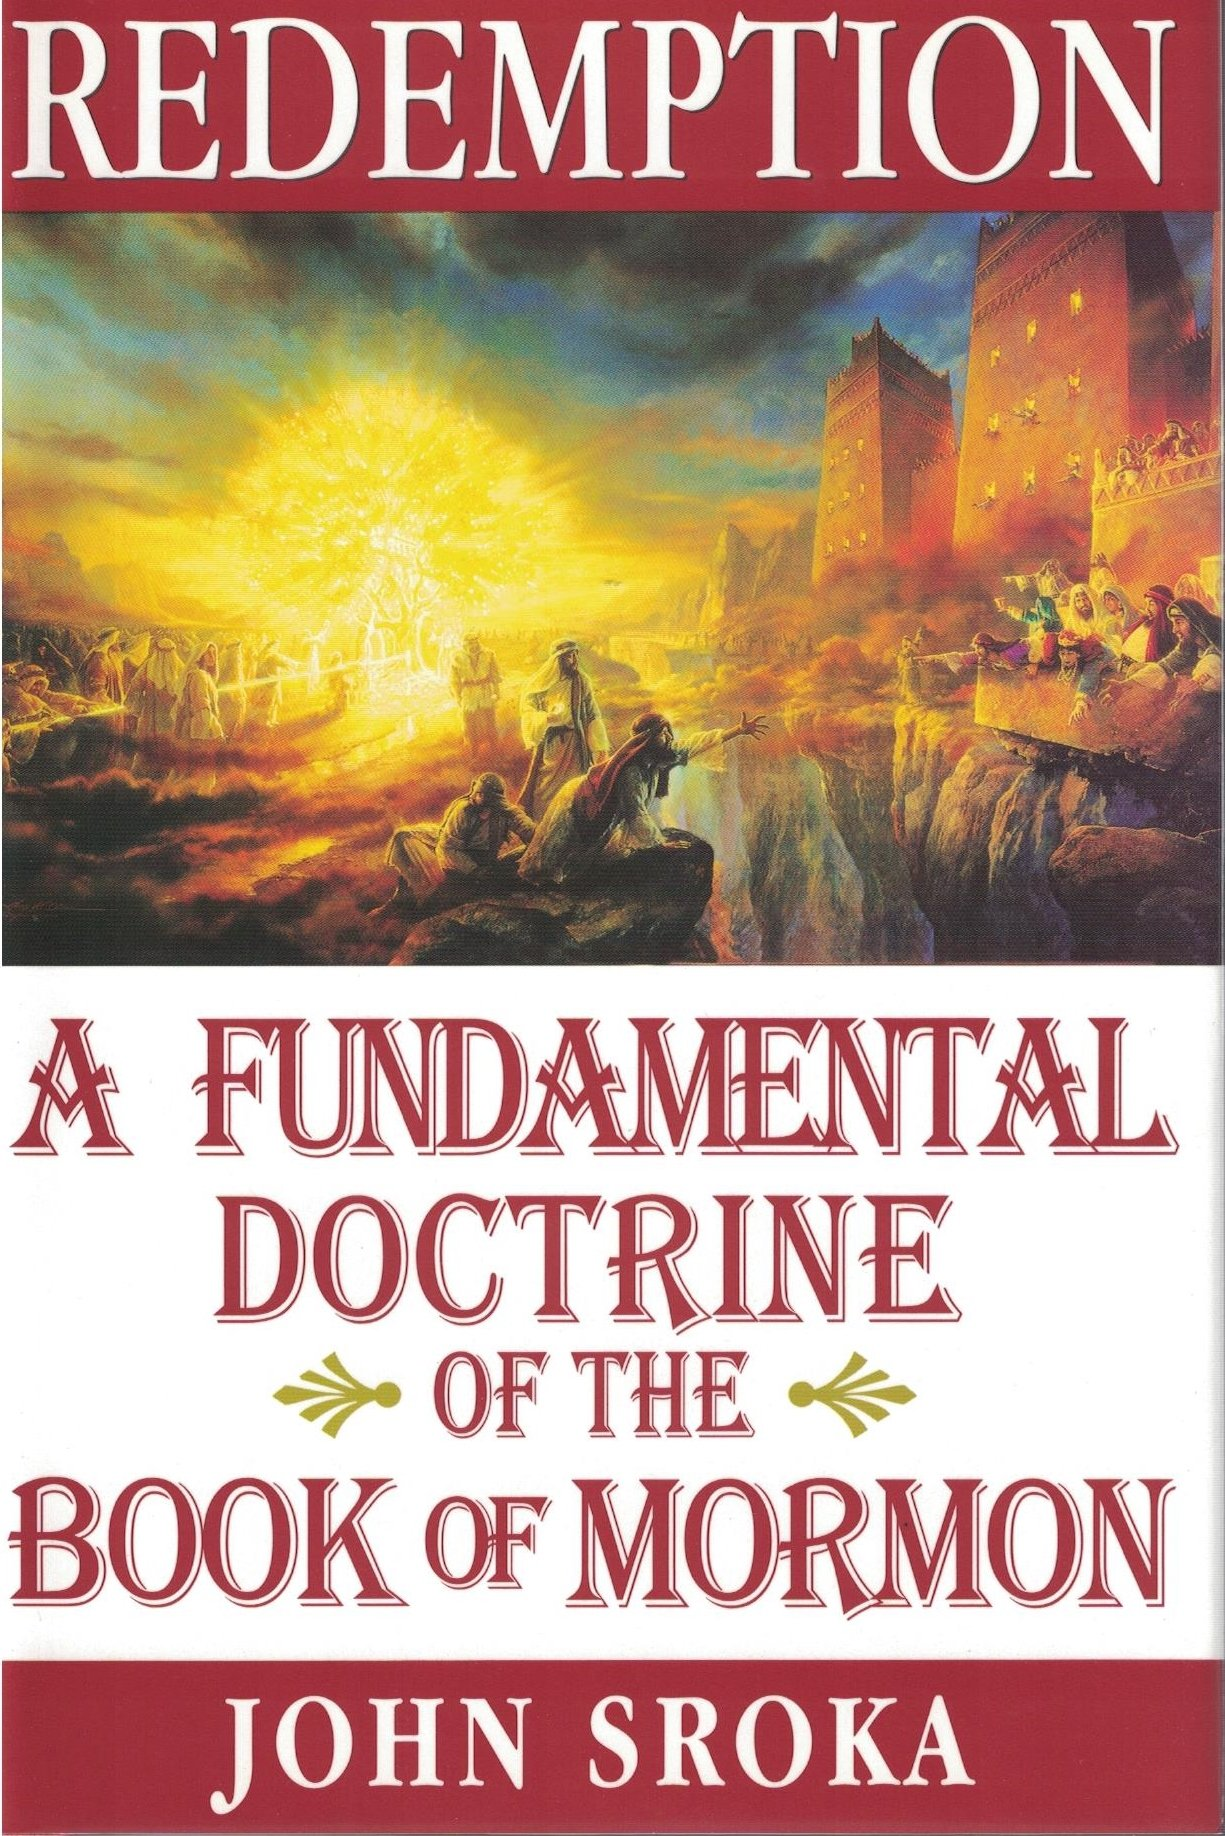 Download Redemption - A Fundamental Doctrine of the Book of Mormon PDF